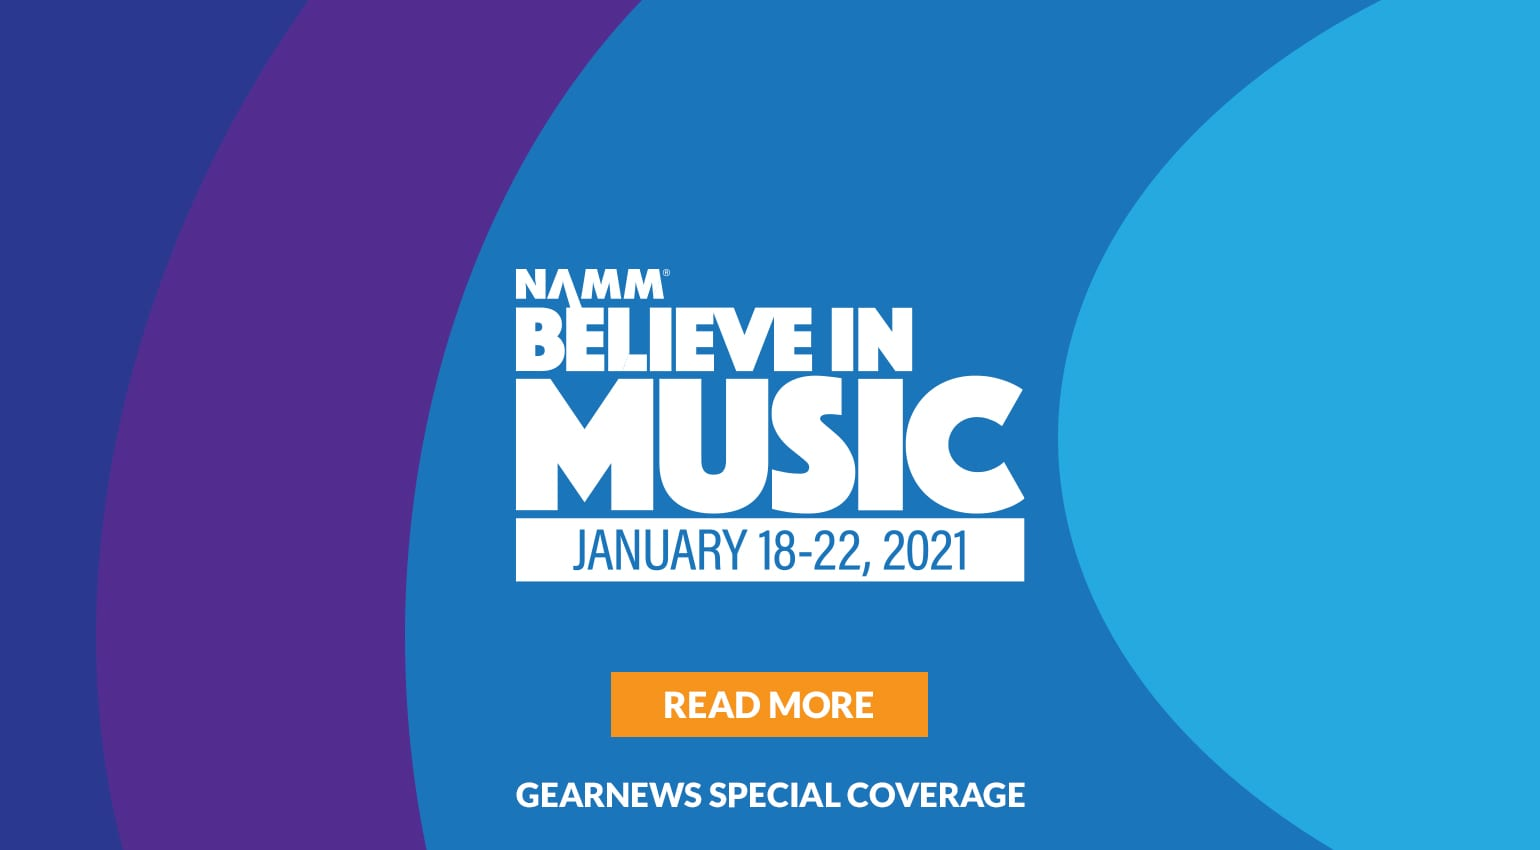 NAMM 2021: The hottest new guitars, amps, synths, studio gear and live/PA equipment!